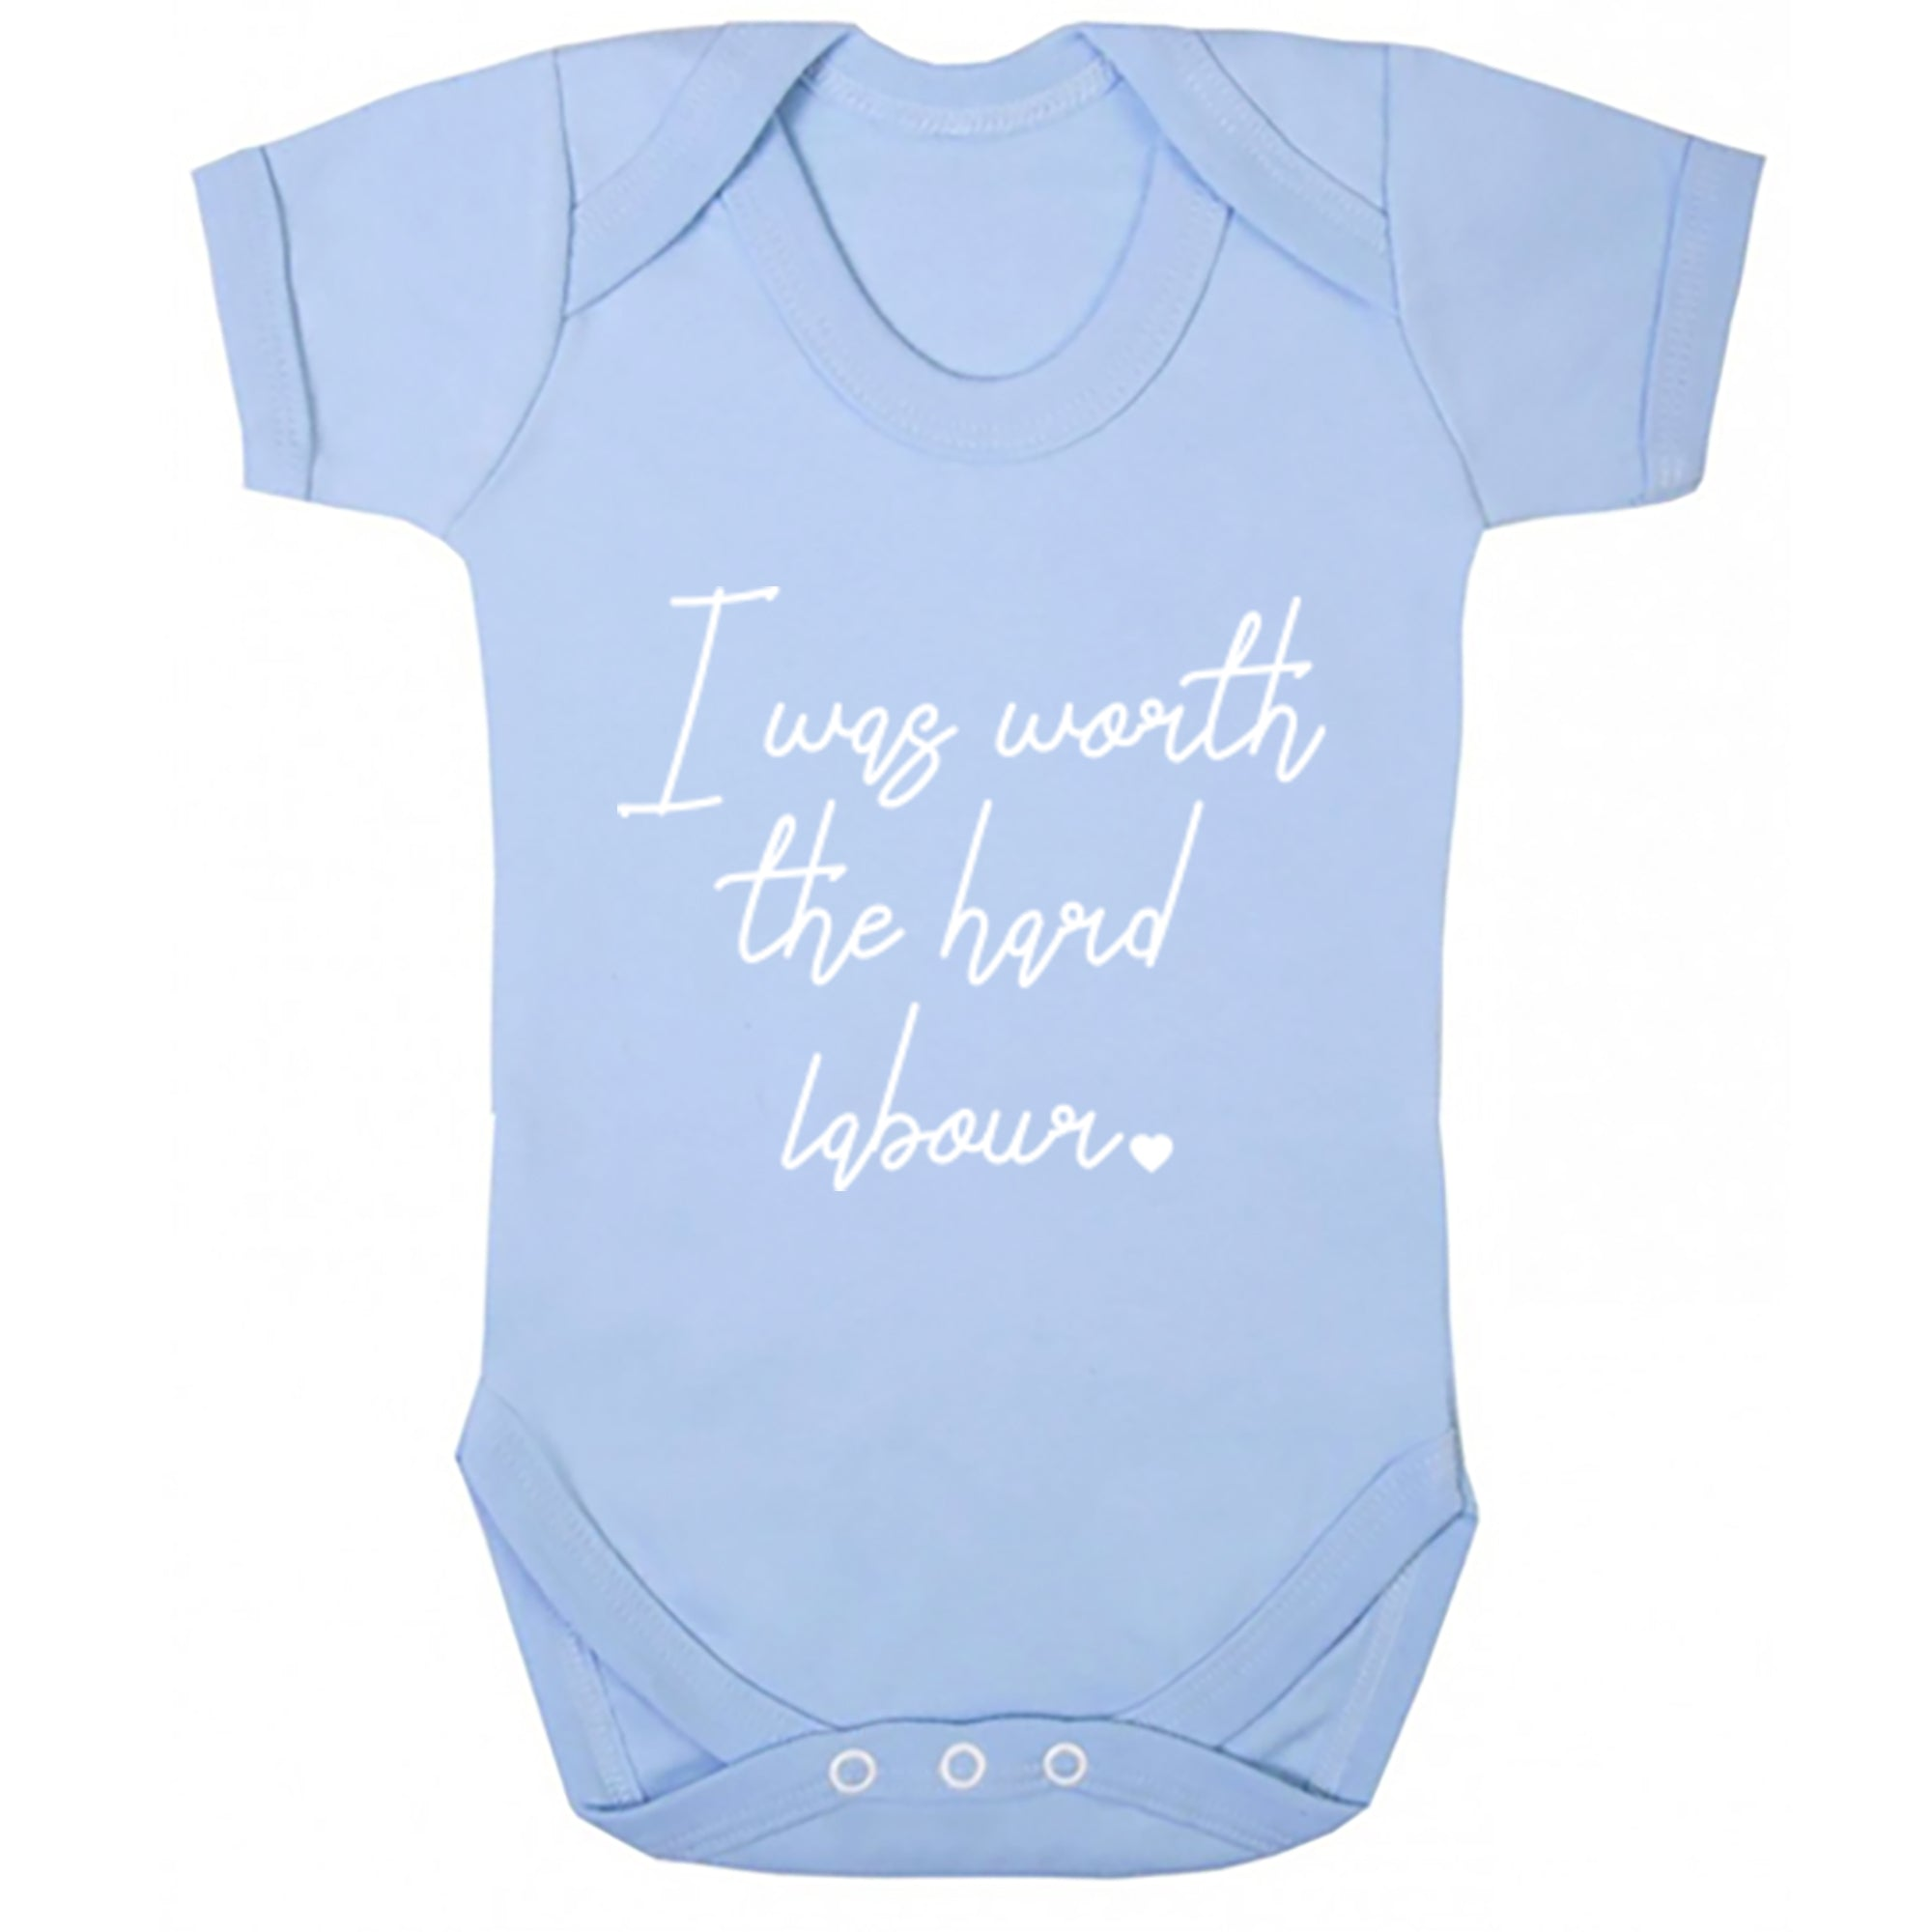 I Was Worth The Hard Labour Baby Vest S0481 - Illustrated Identity Ltd.